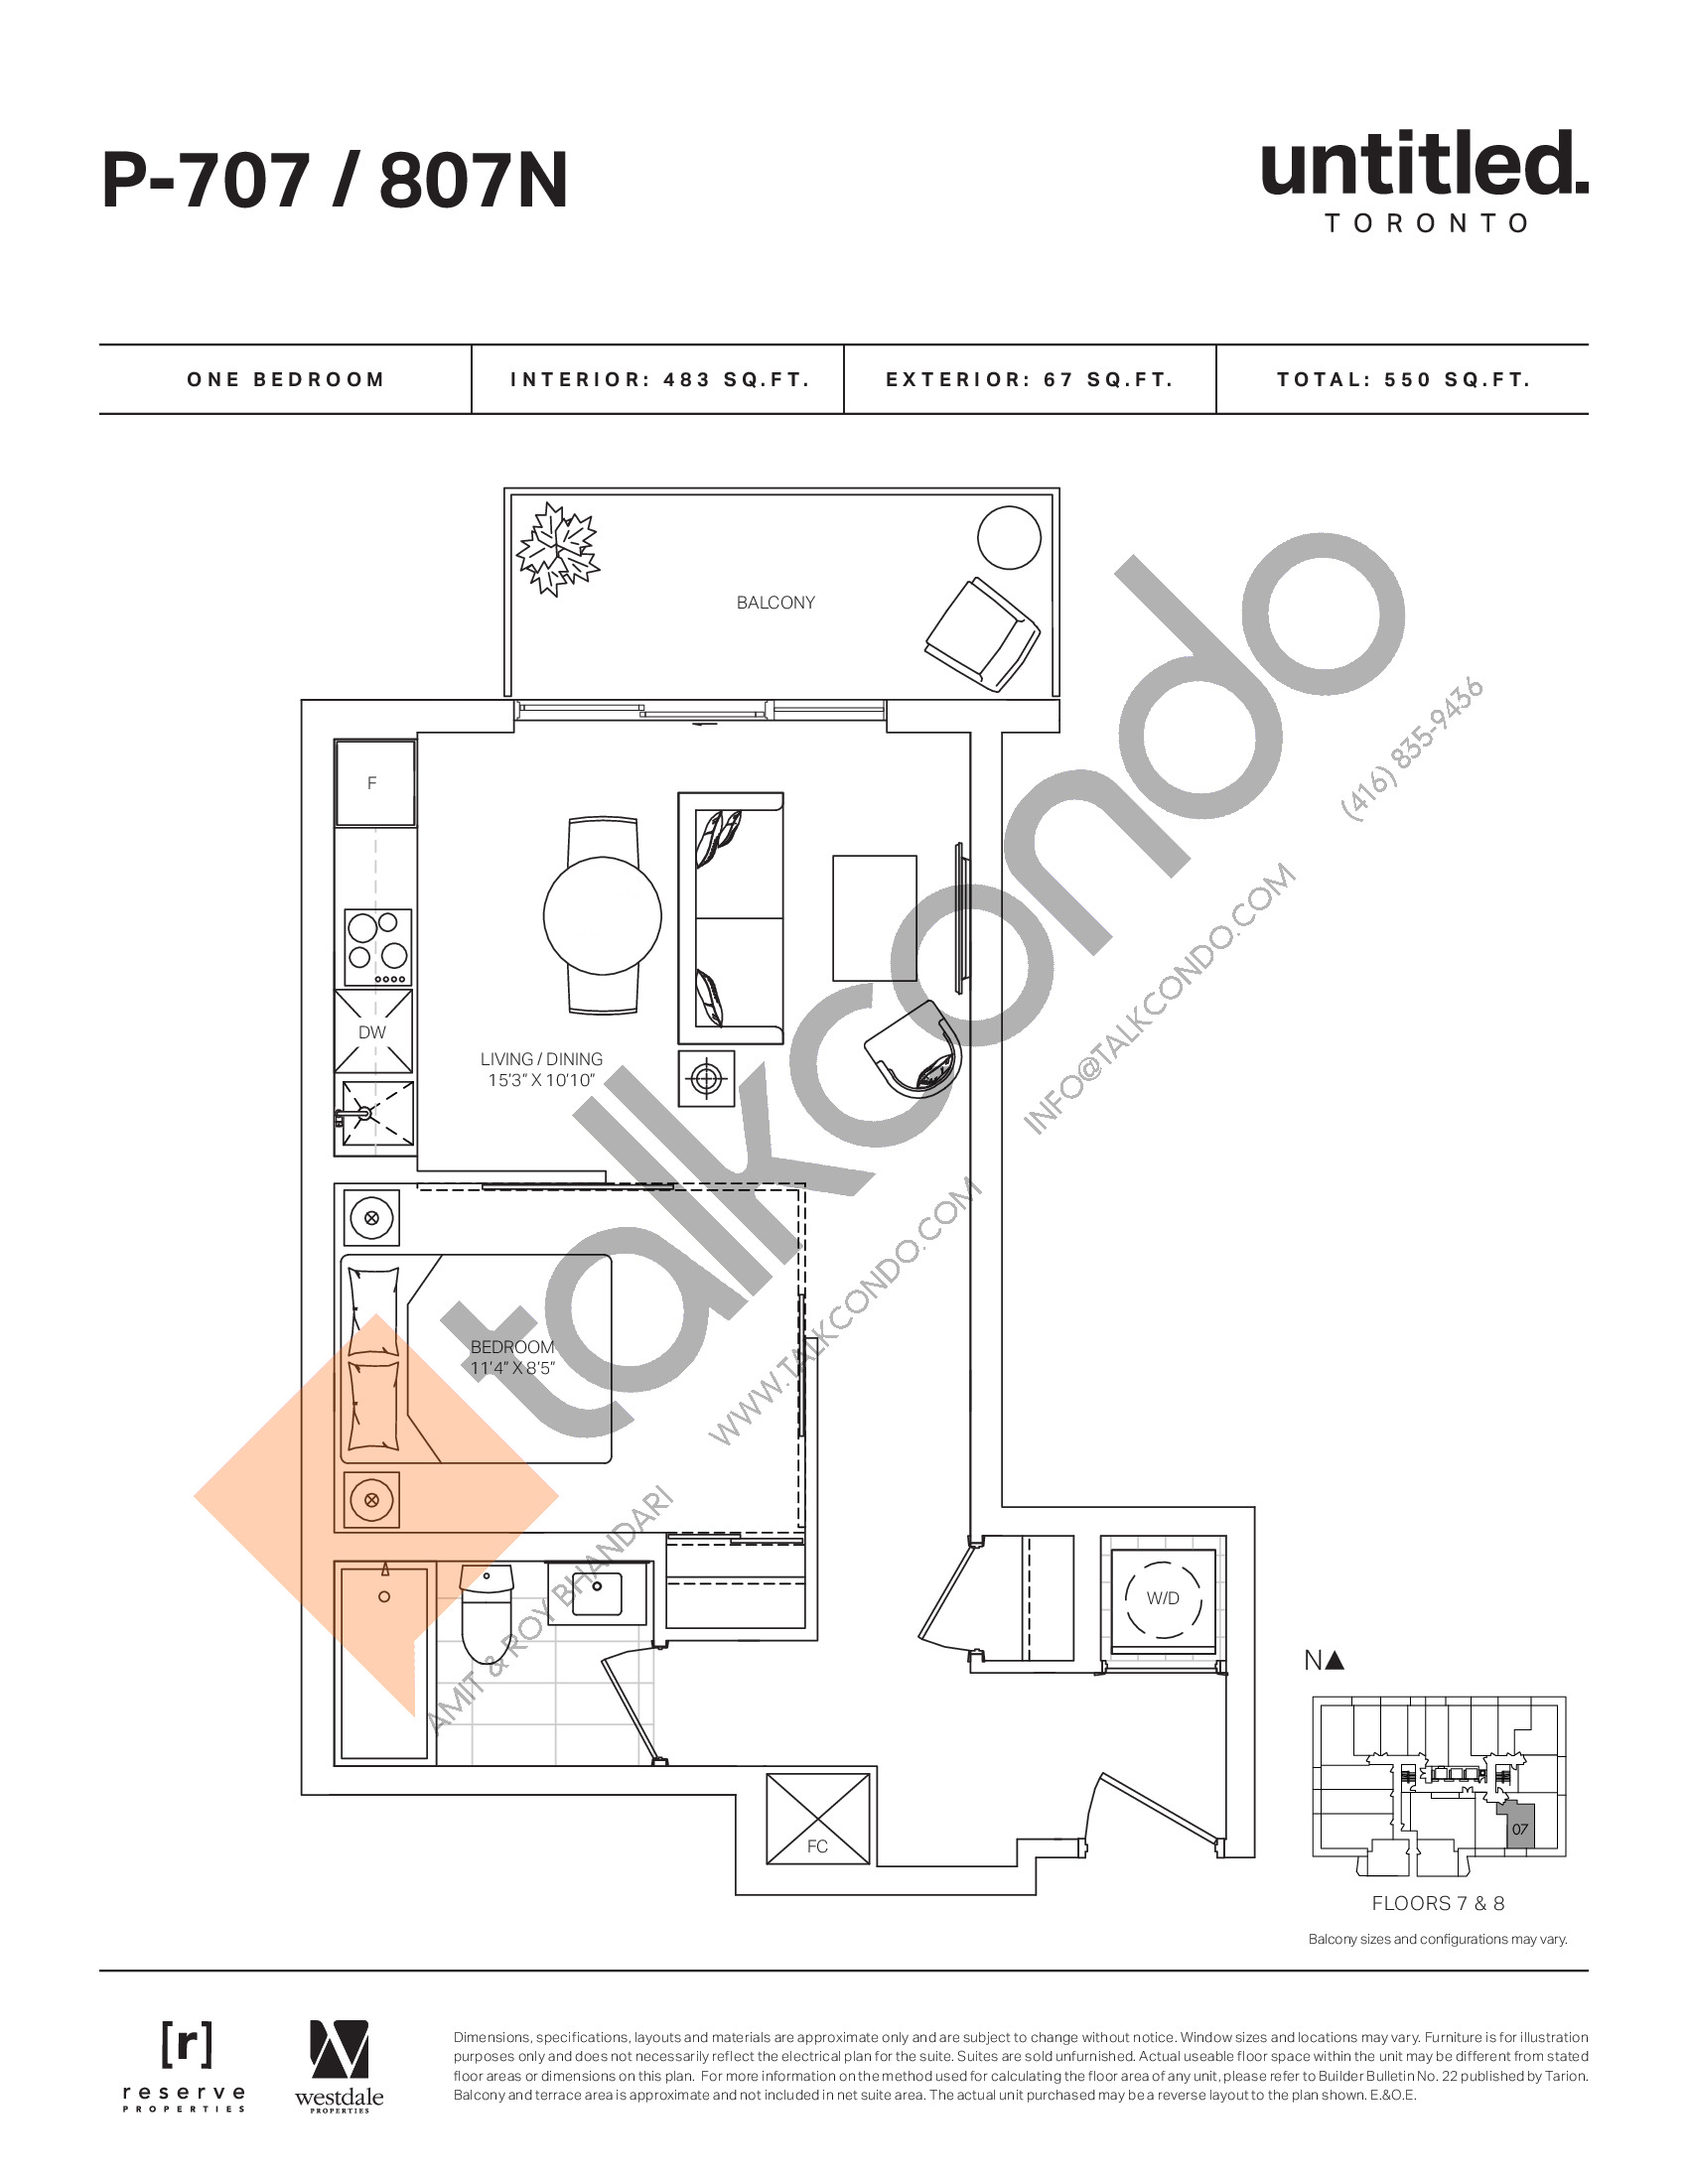 P-707/807N Floor Plan at Untitled North Tower Condos - 483 sq.ft